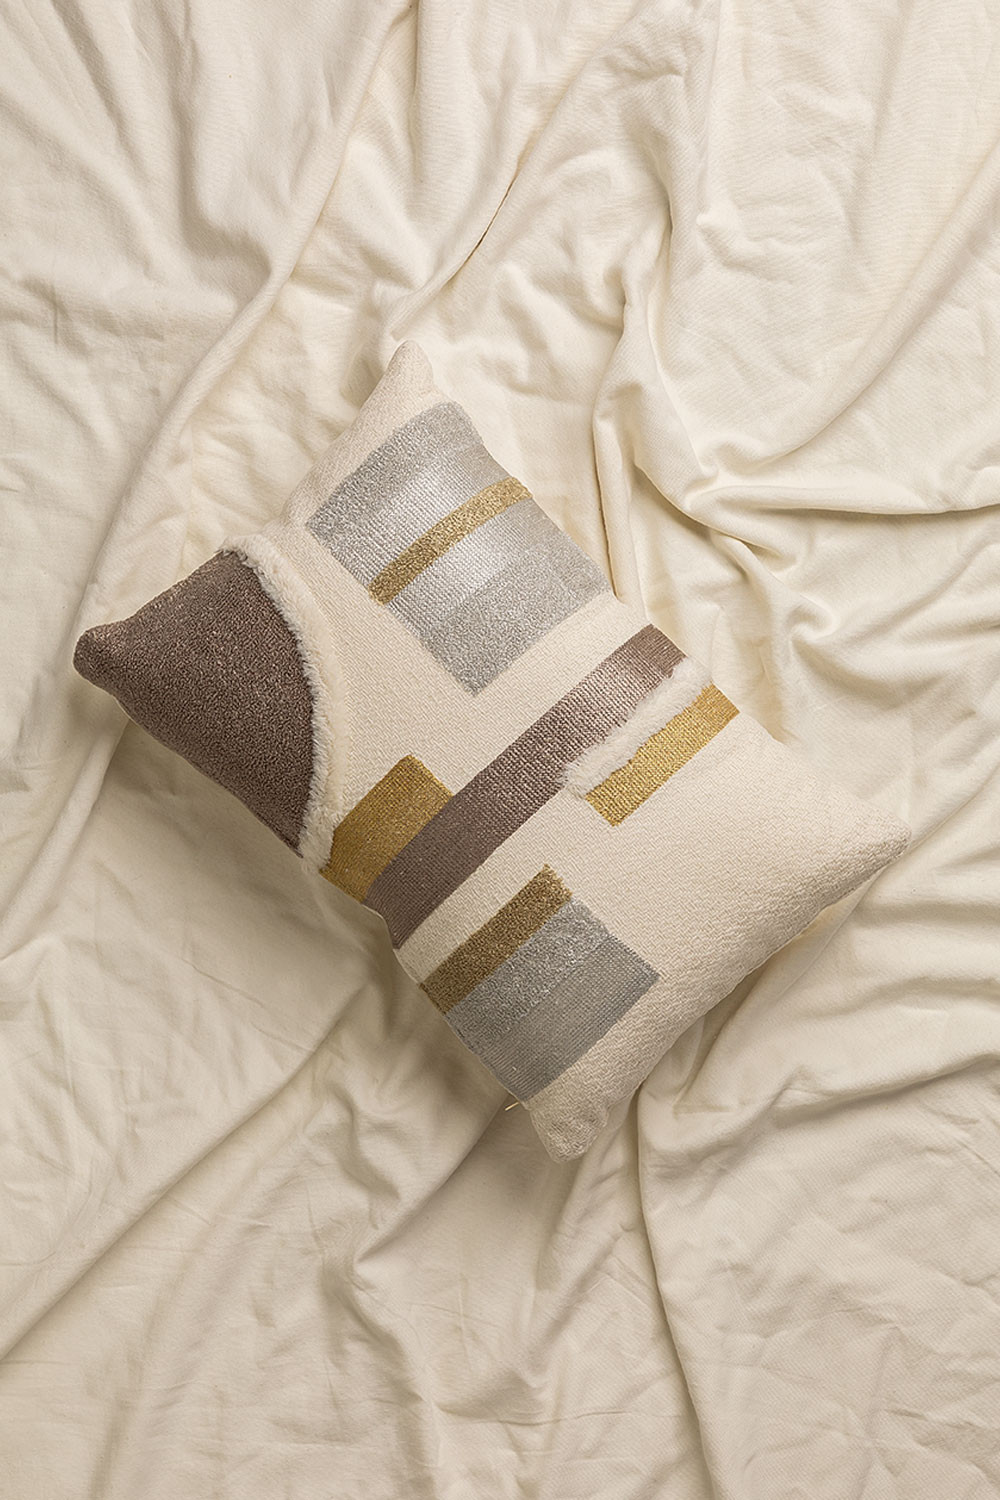 Cotton Embroidery Cushion (45x45 cm) Aspen, gallery image 1